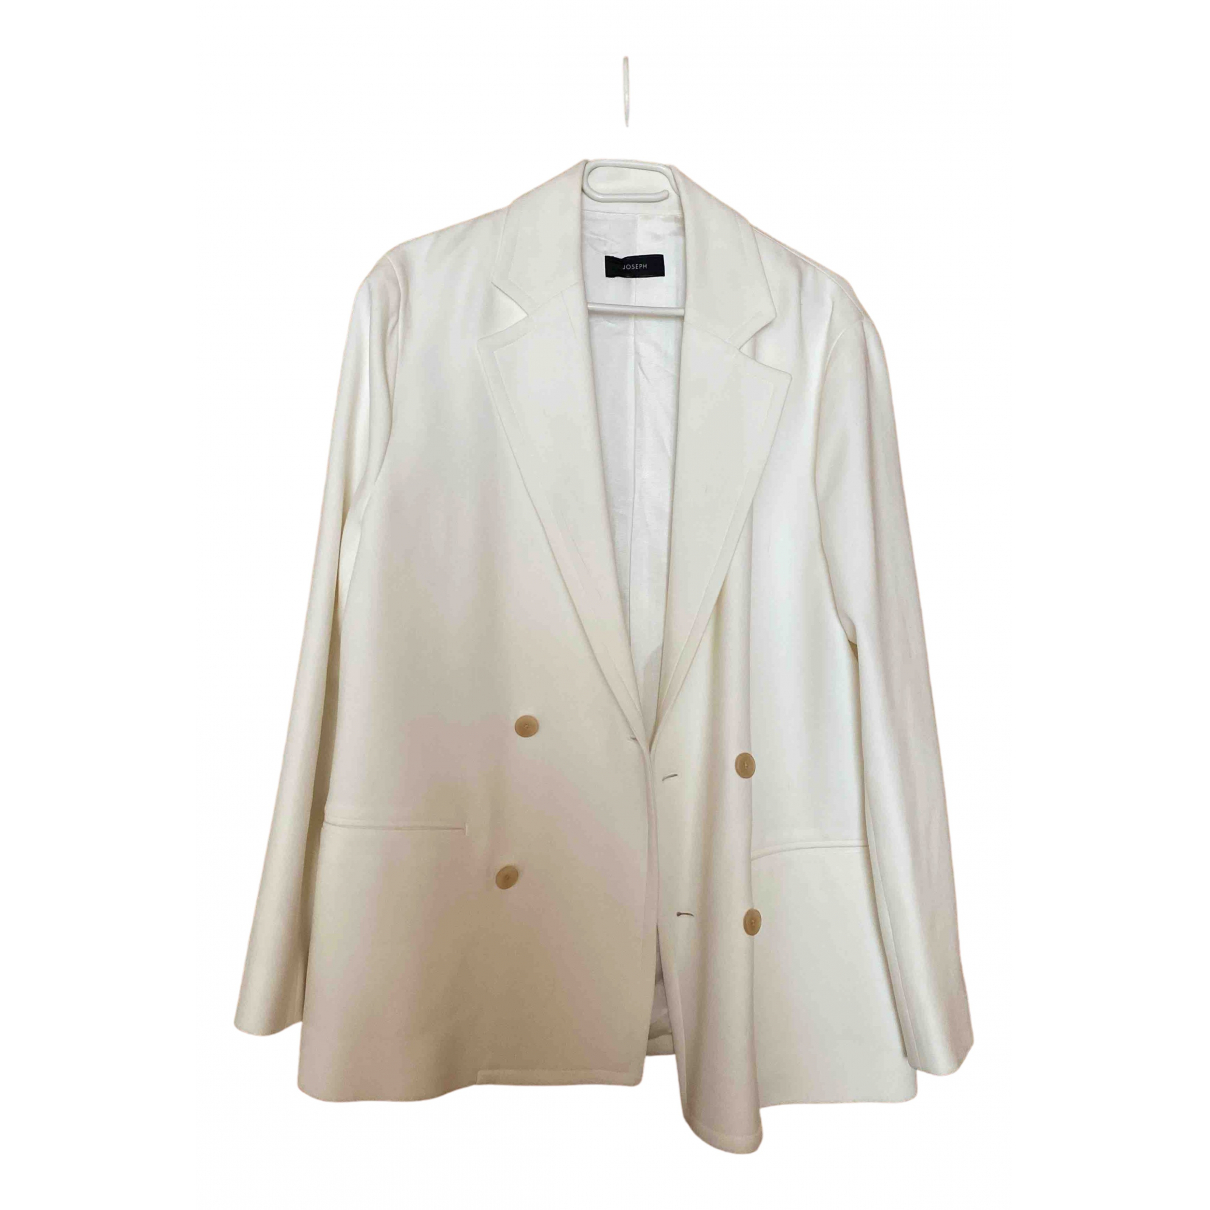 Joseph \N White jacket for Women 40 FR